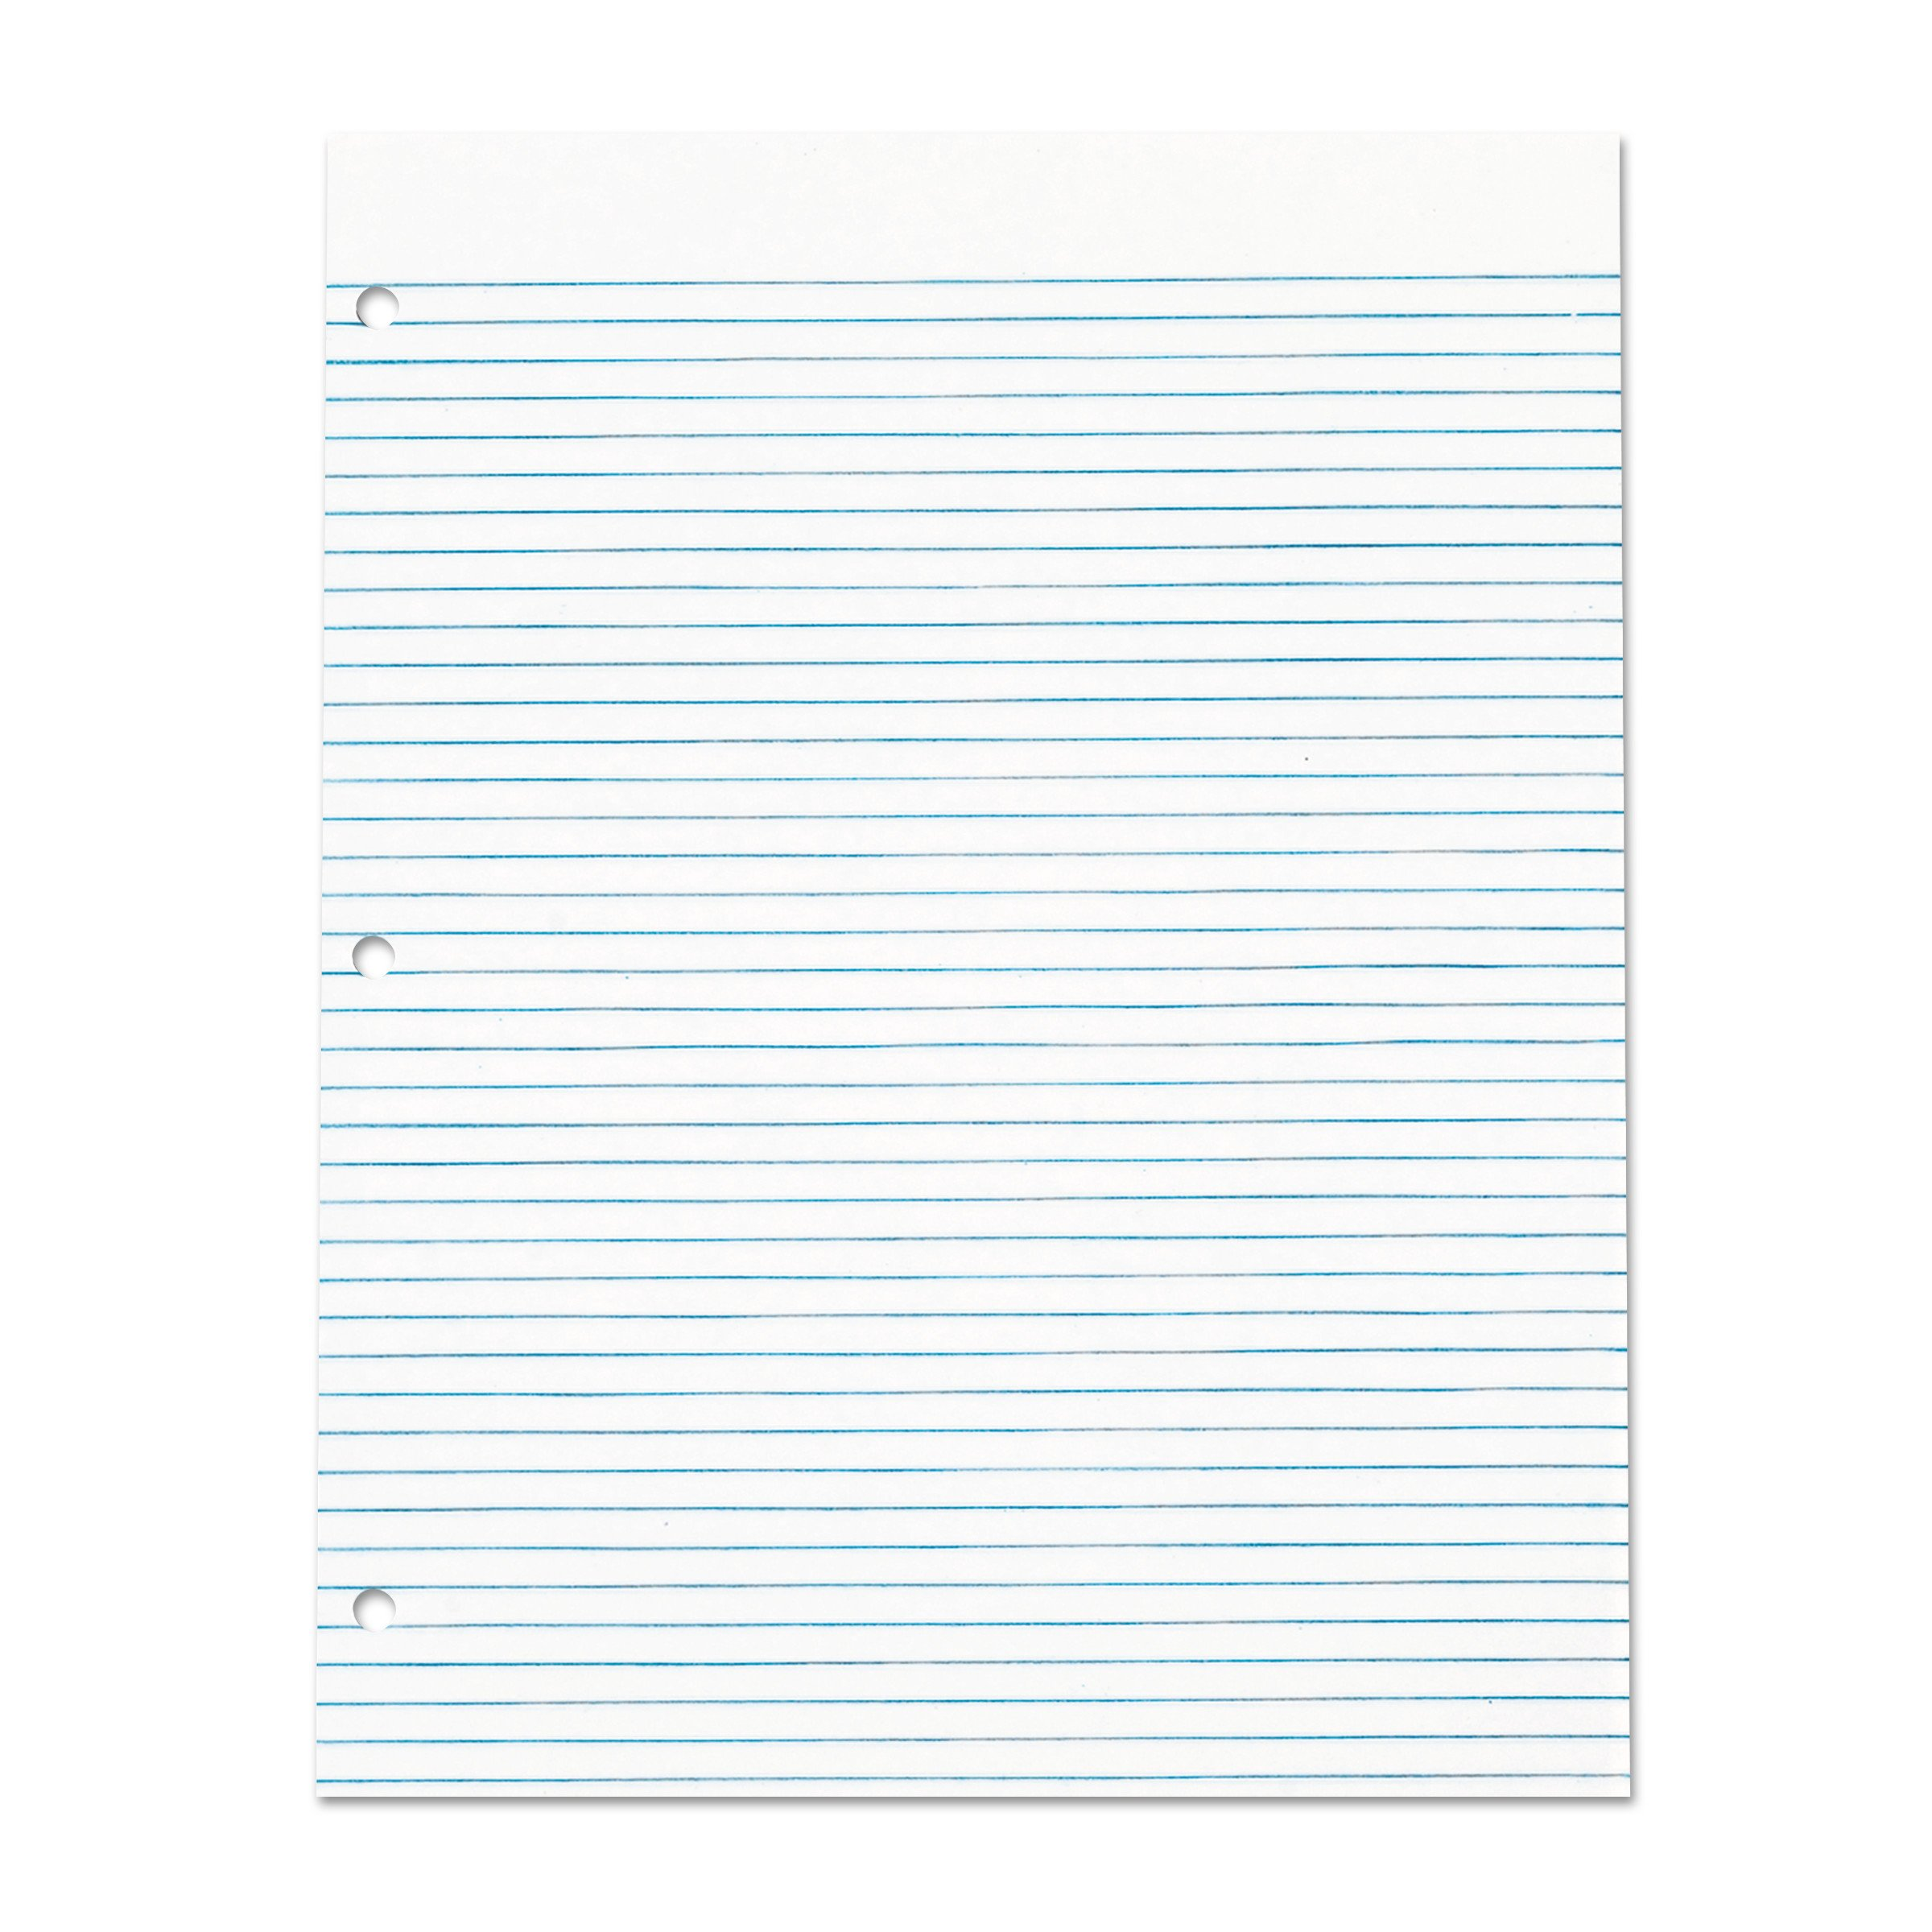 TOPS 7521 Three Hole Punched Pad, Narrow Rule, 8 1/2 x 11, White, 50 Sheets (Case of 12 Pads) by TOPS